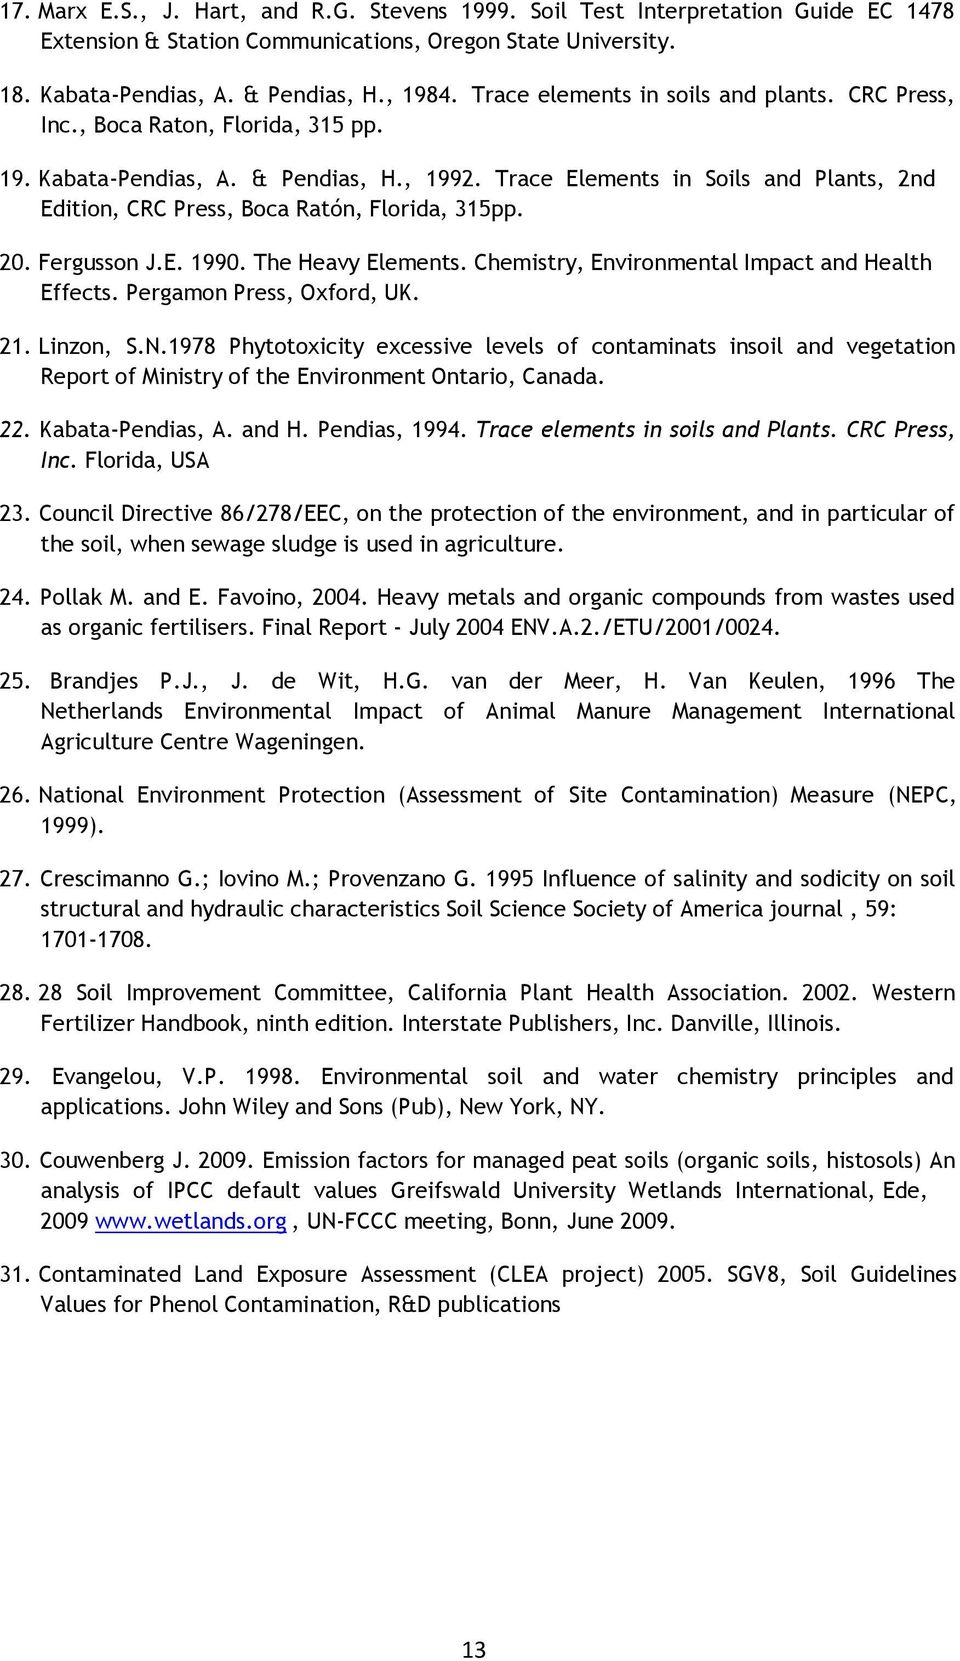 Trace Elements in Soils and Plants, 2nd Edition, CRC Press, Boca Ratón, Florida, 315pp. 20. Fergusson J.E. 1990. The Heavy Elements. Chemistry, Environmental Impact and Health Effects.